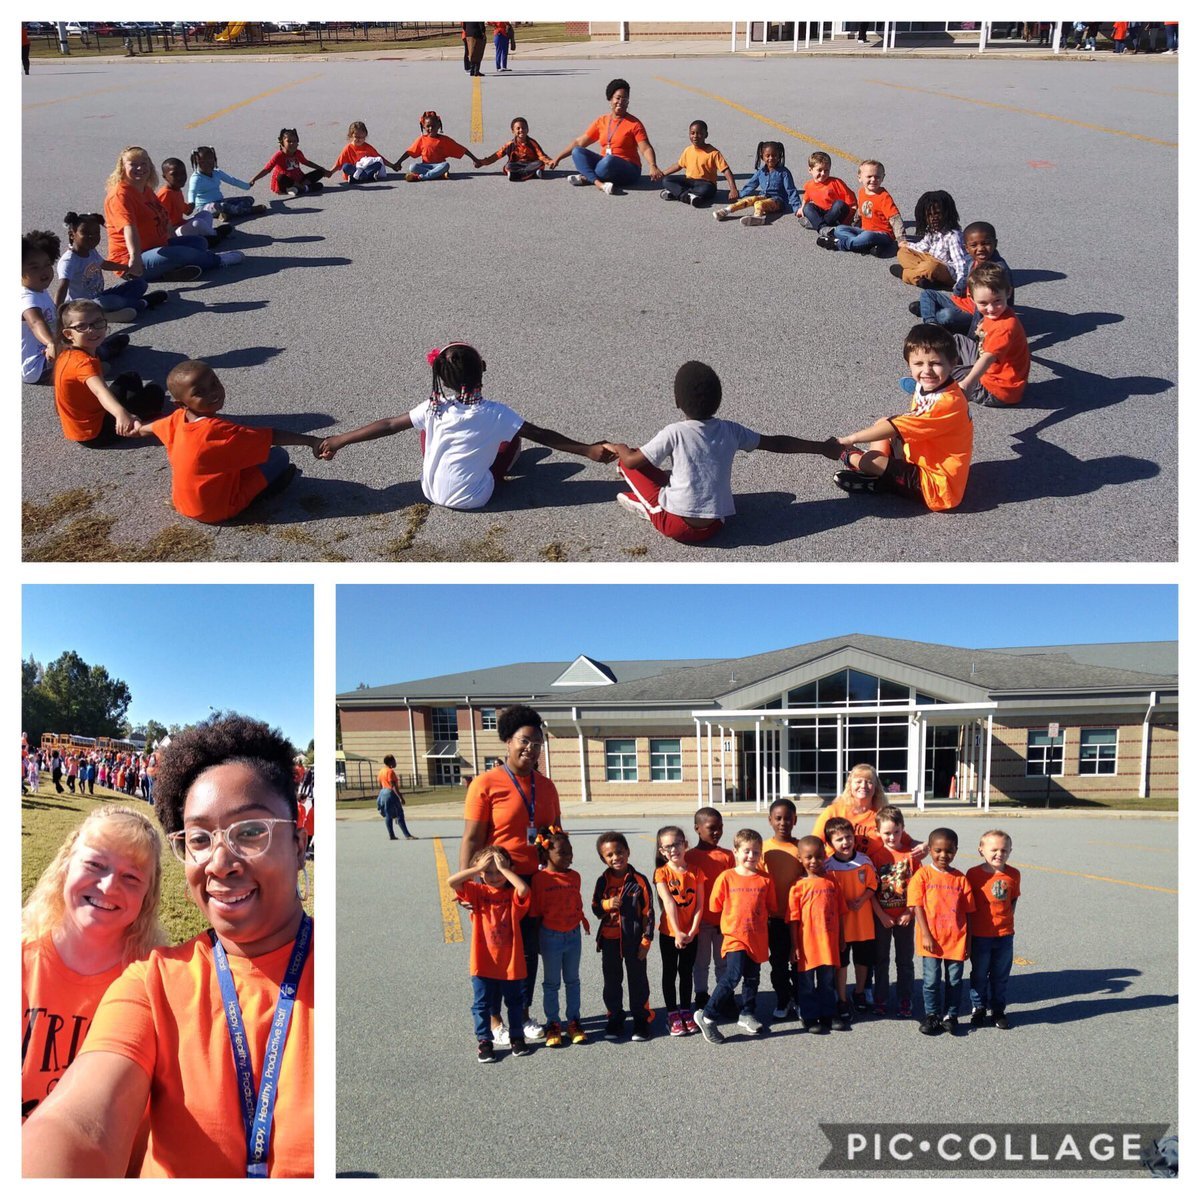 Unity Day 2019! C109 will not be bullies! We include everyone and choose kindness! #hesteach #spsk12proud #wecare